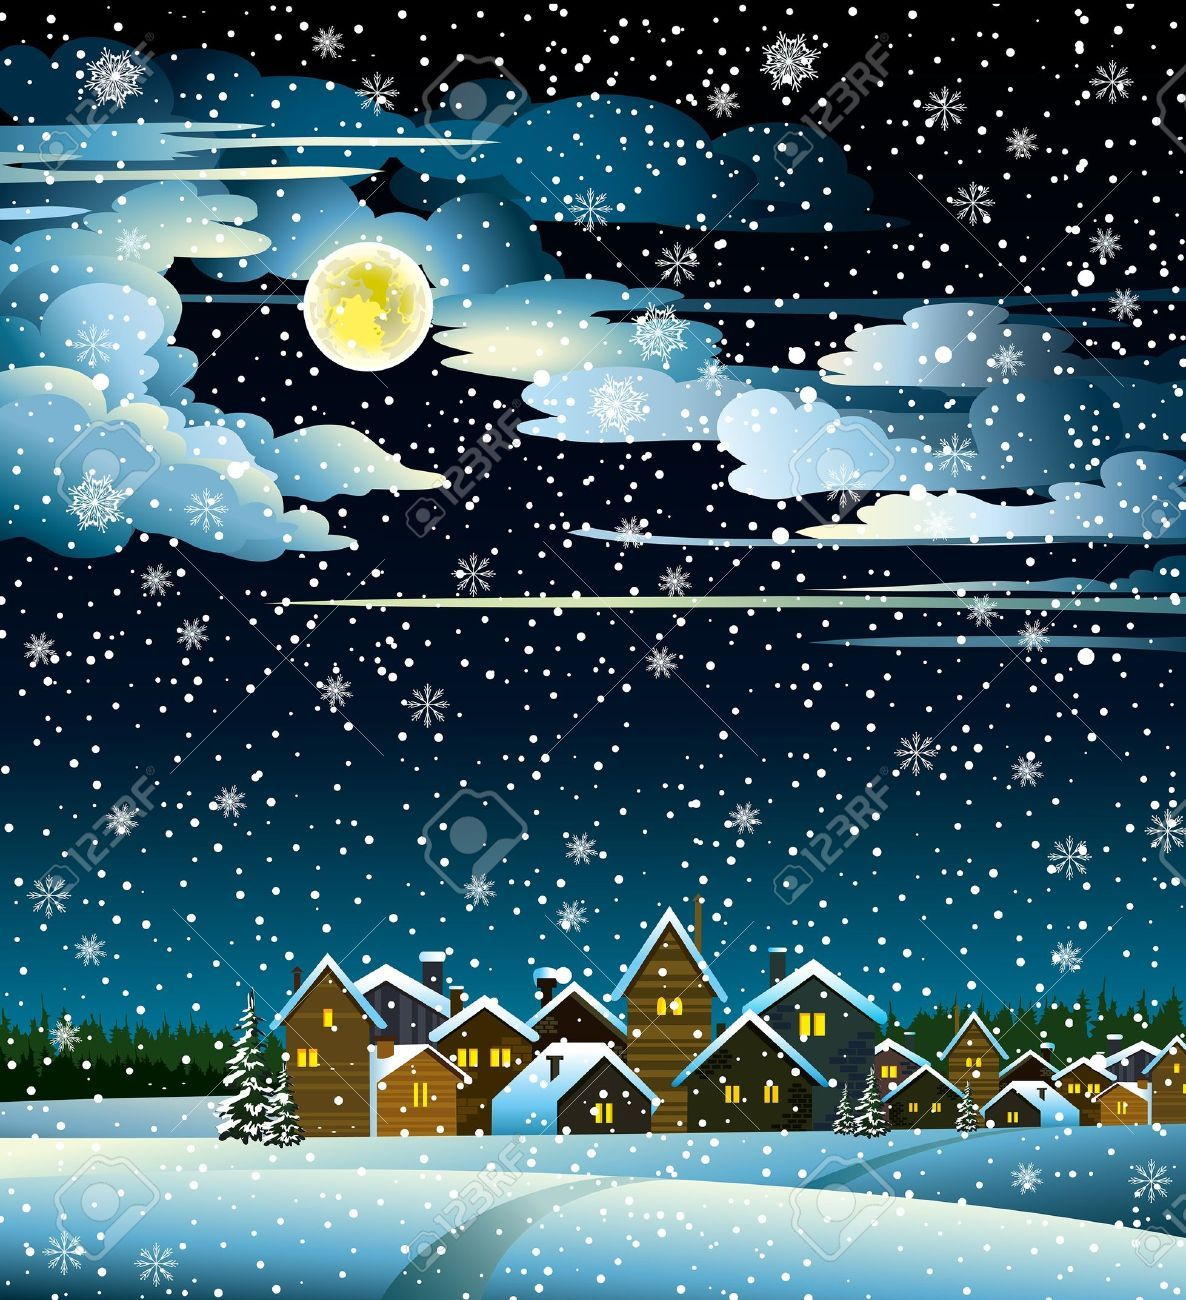 Winter landscape with snow houses, forest and fool moon